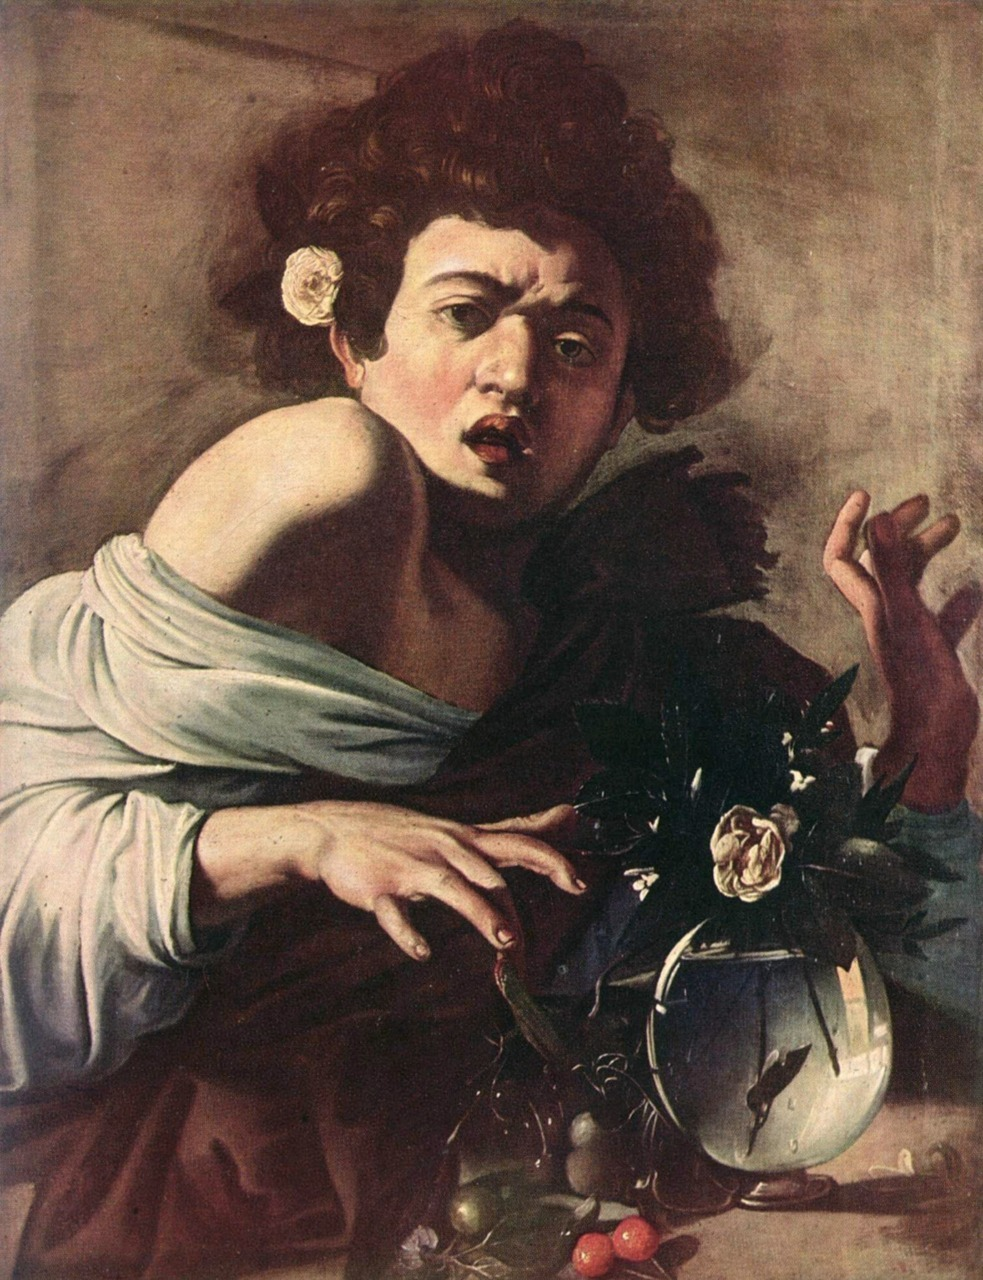 Boy bitten by Lizard (1593), oil on canvas | artwork by Caravaggio